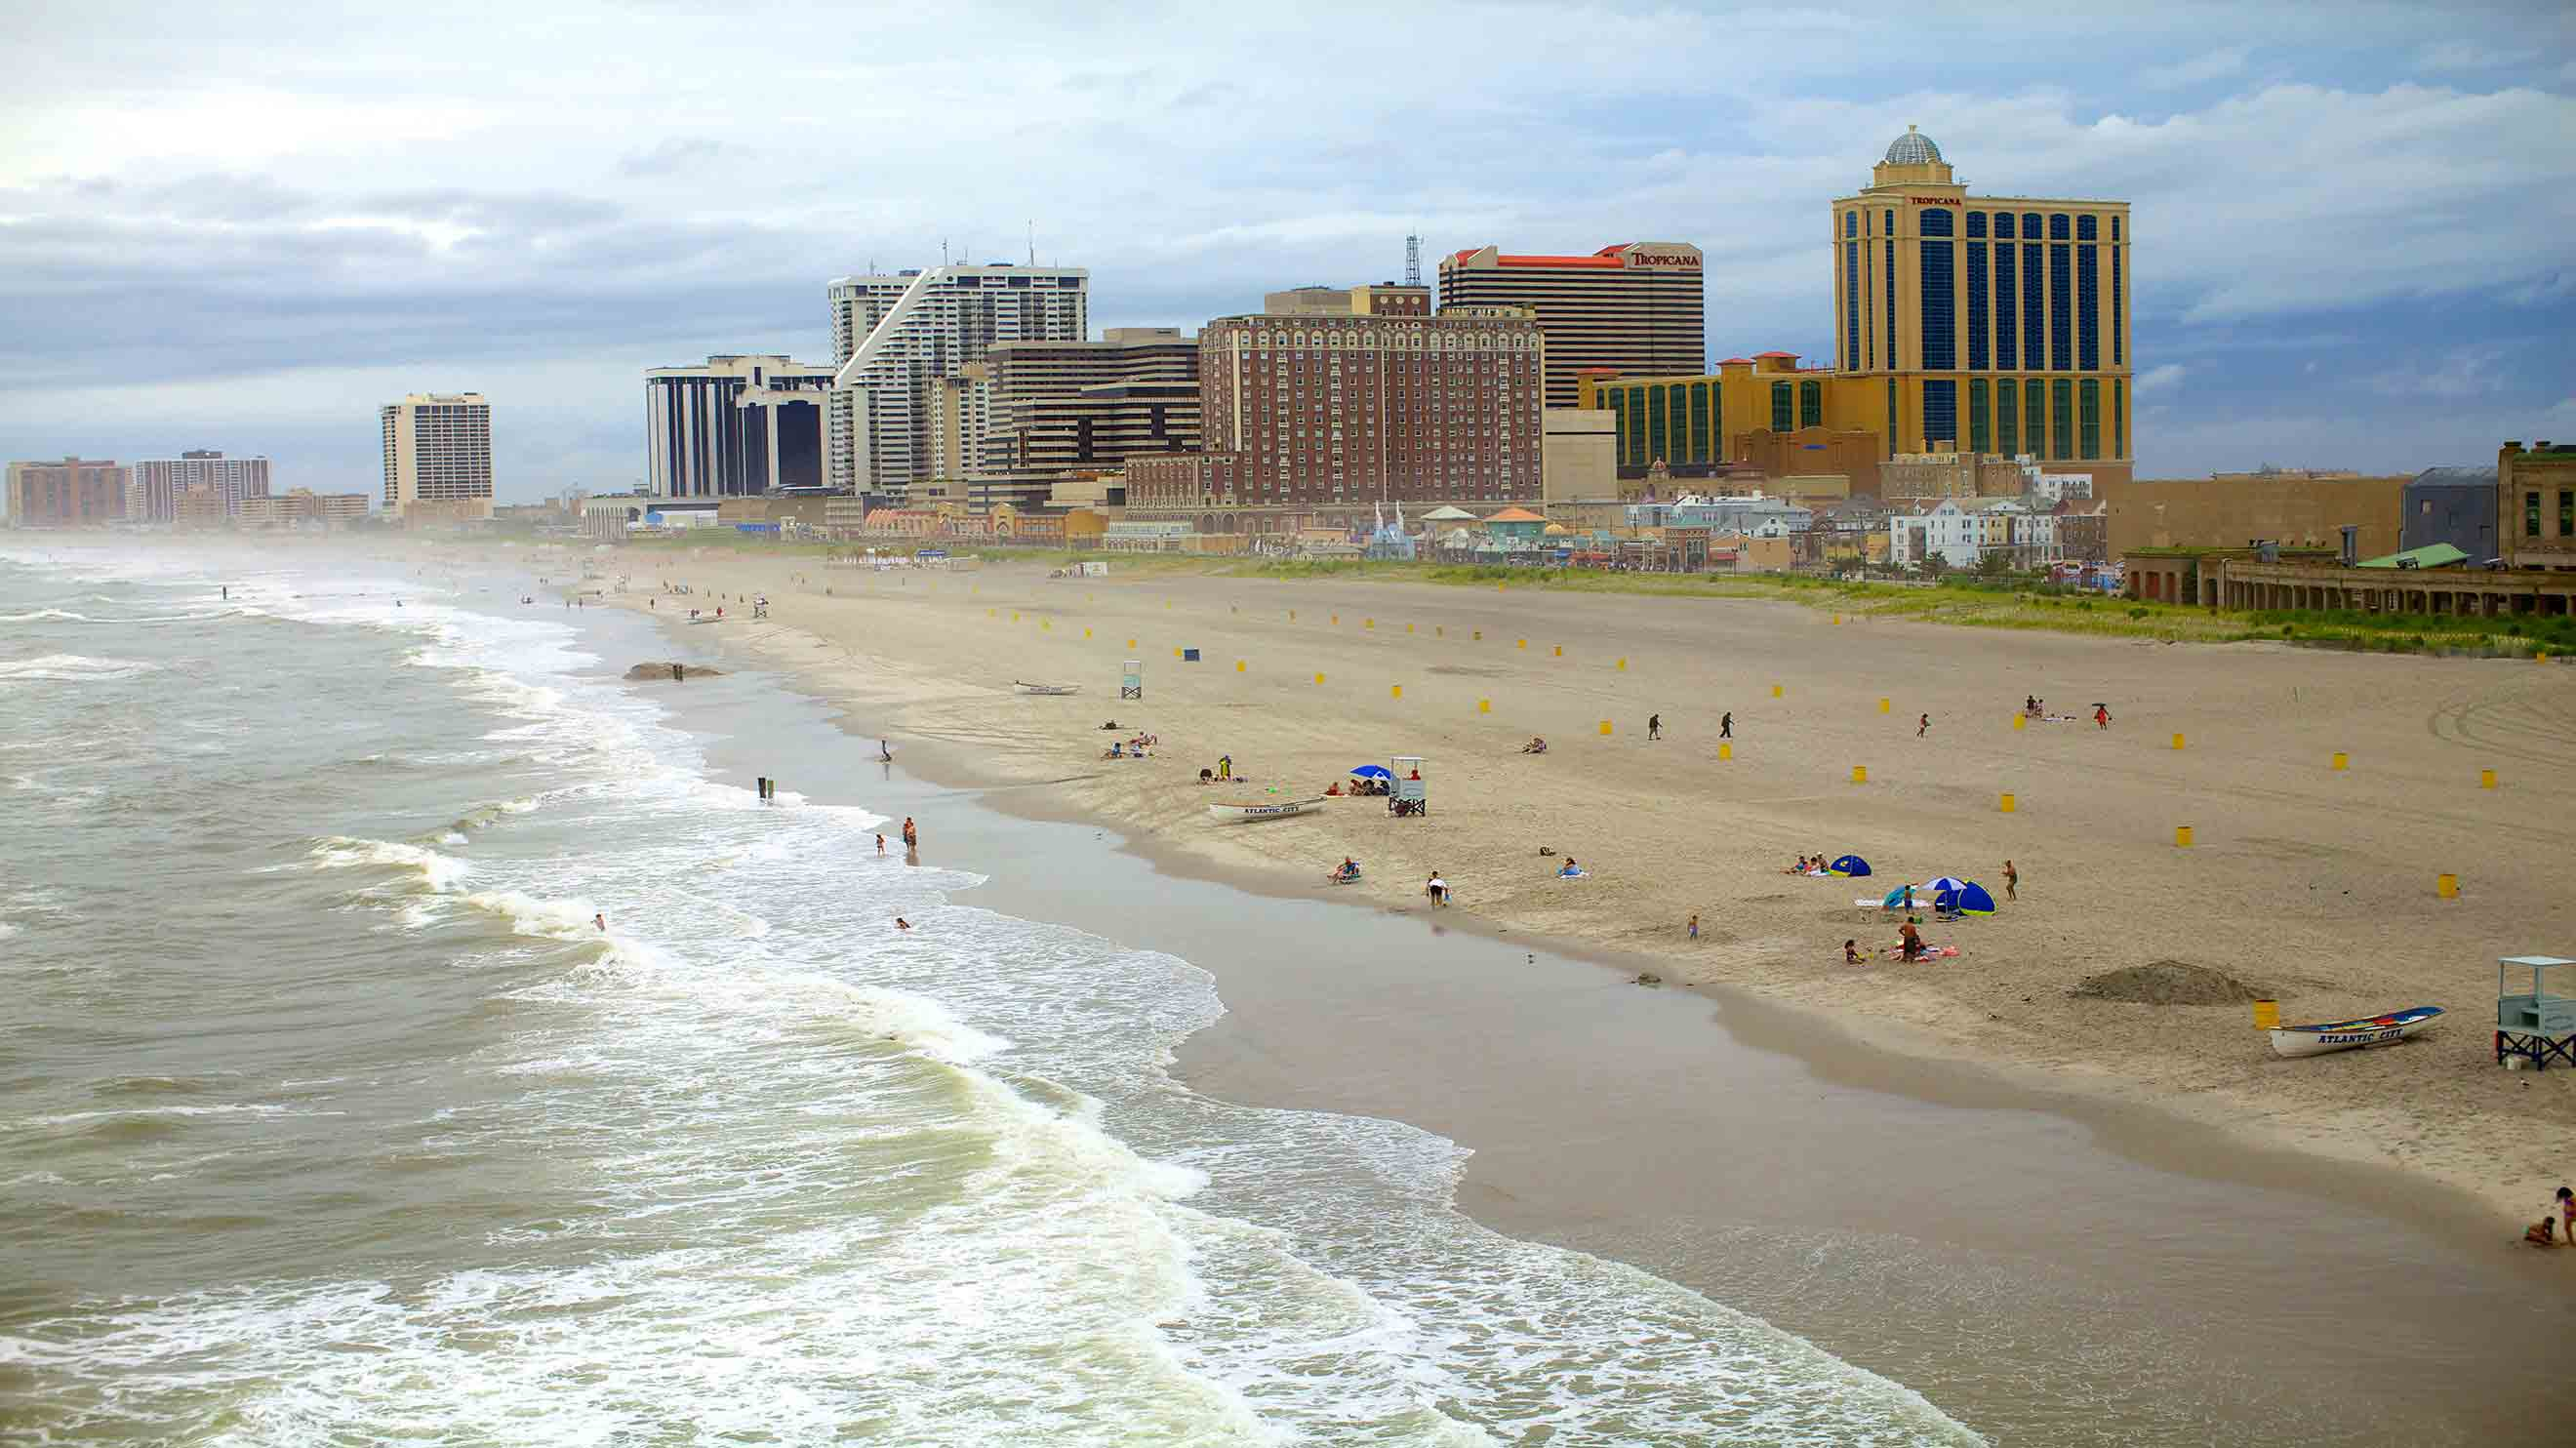 The 10 Best Hotels In Atlantic City Boardwalk For 2019 Expedia